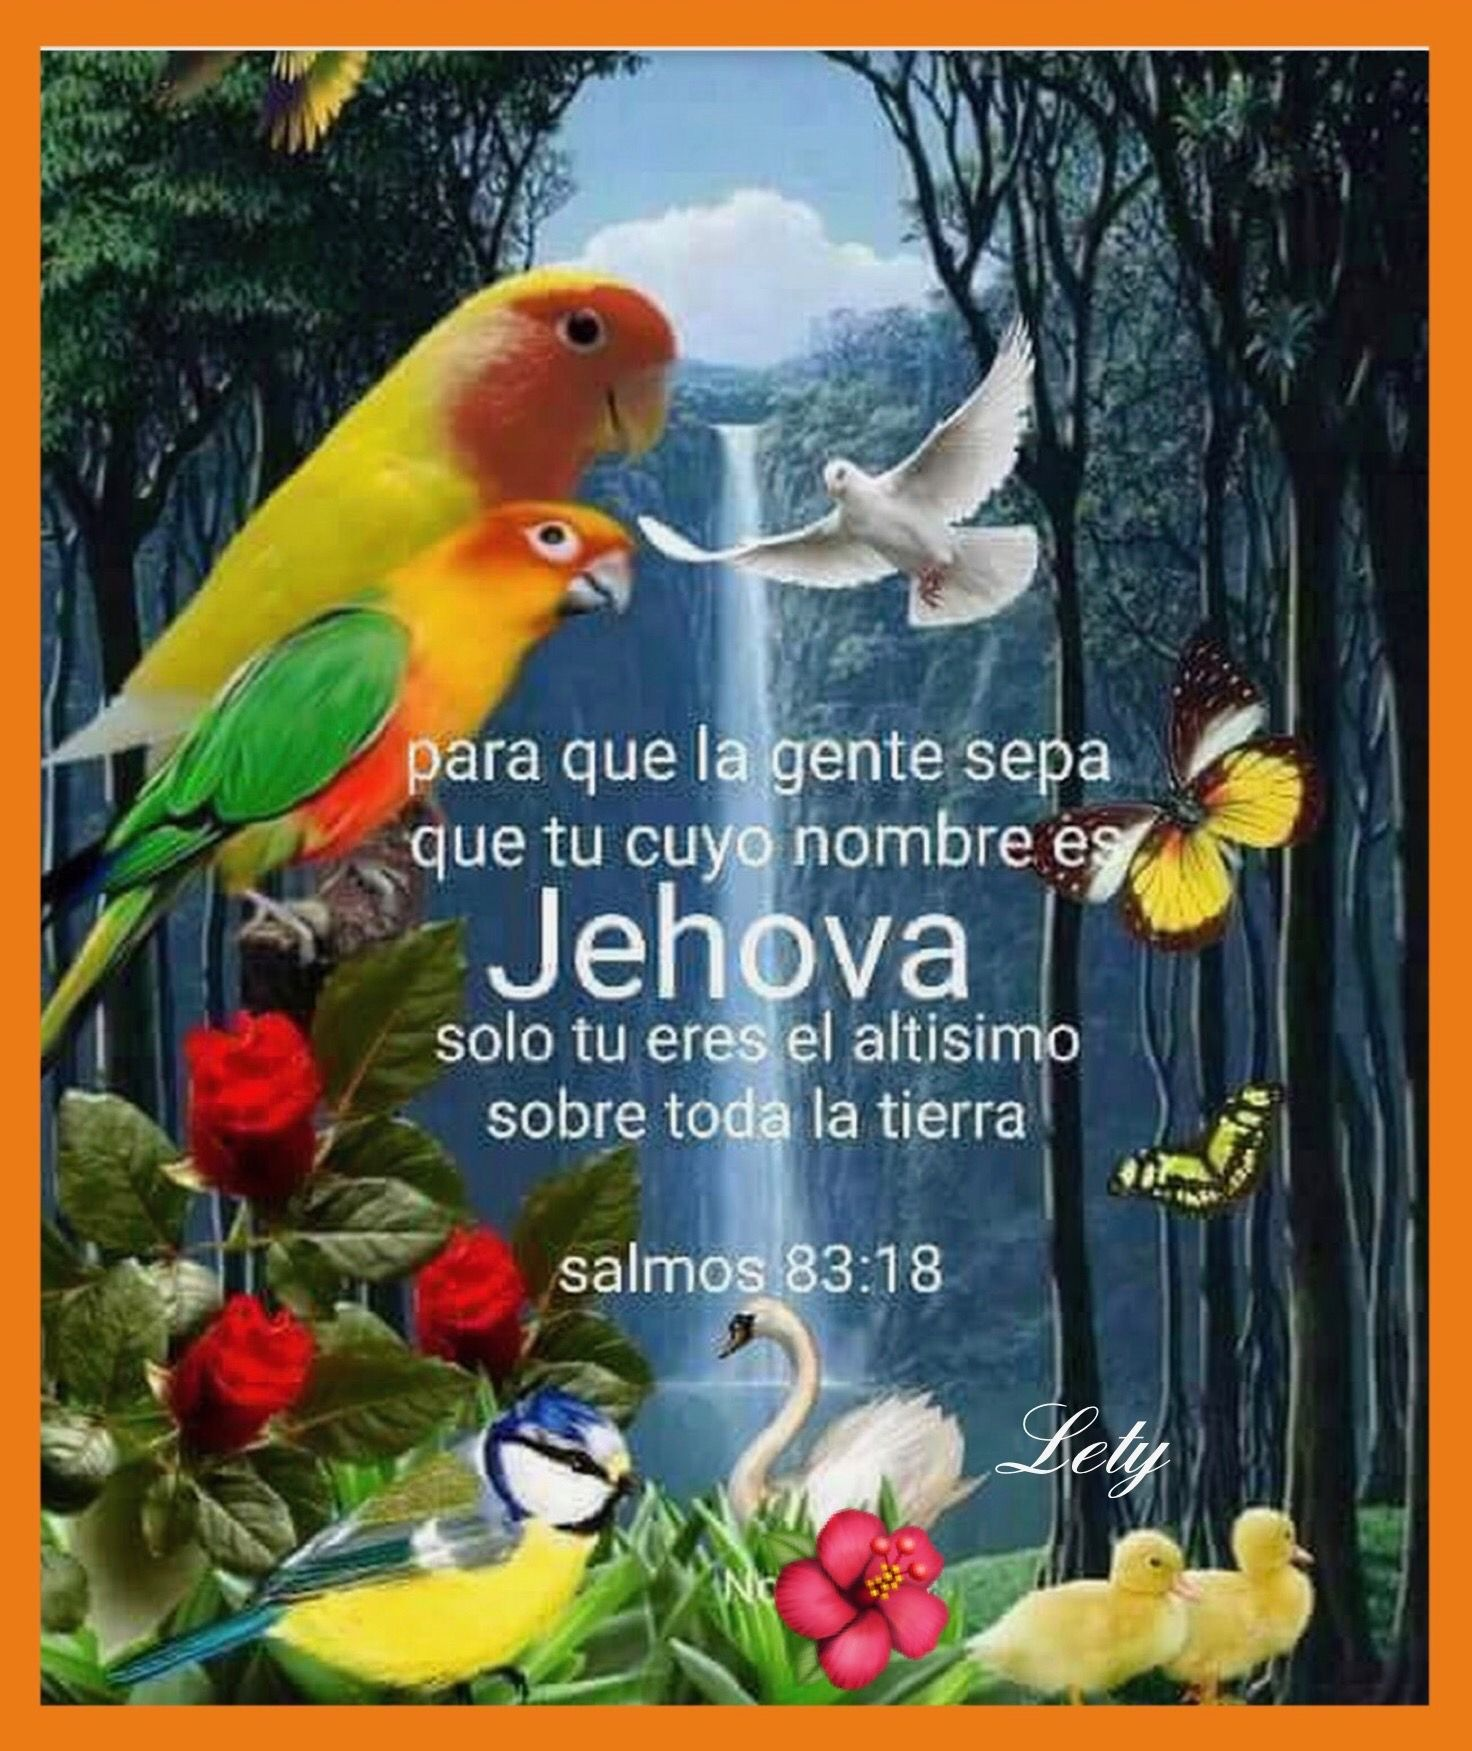 Jw Org Jehovah Witness Quotes Jw Bible Family Bible Study Encuentra las mejores imágenes de stock de imágenes full hd 1080. jw org jehovah witness quotes jw